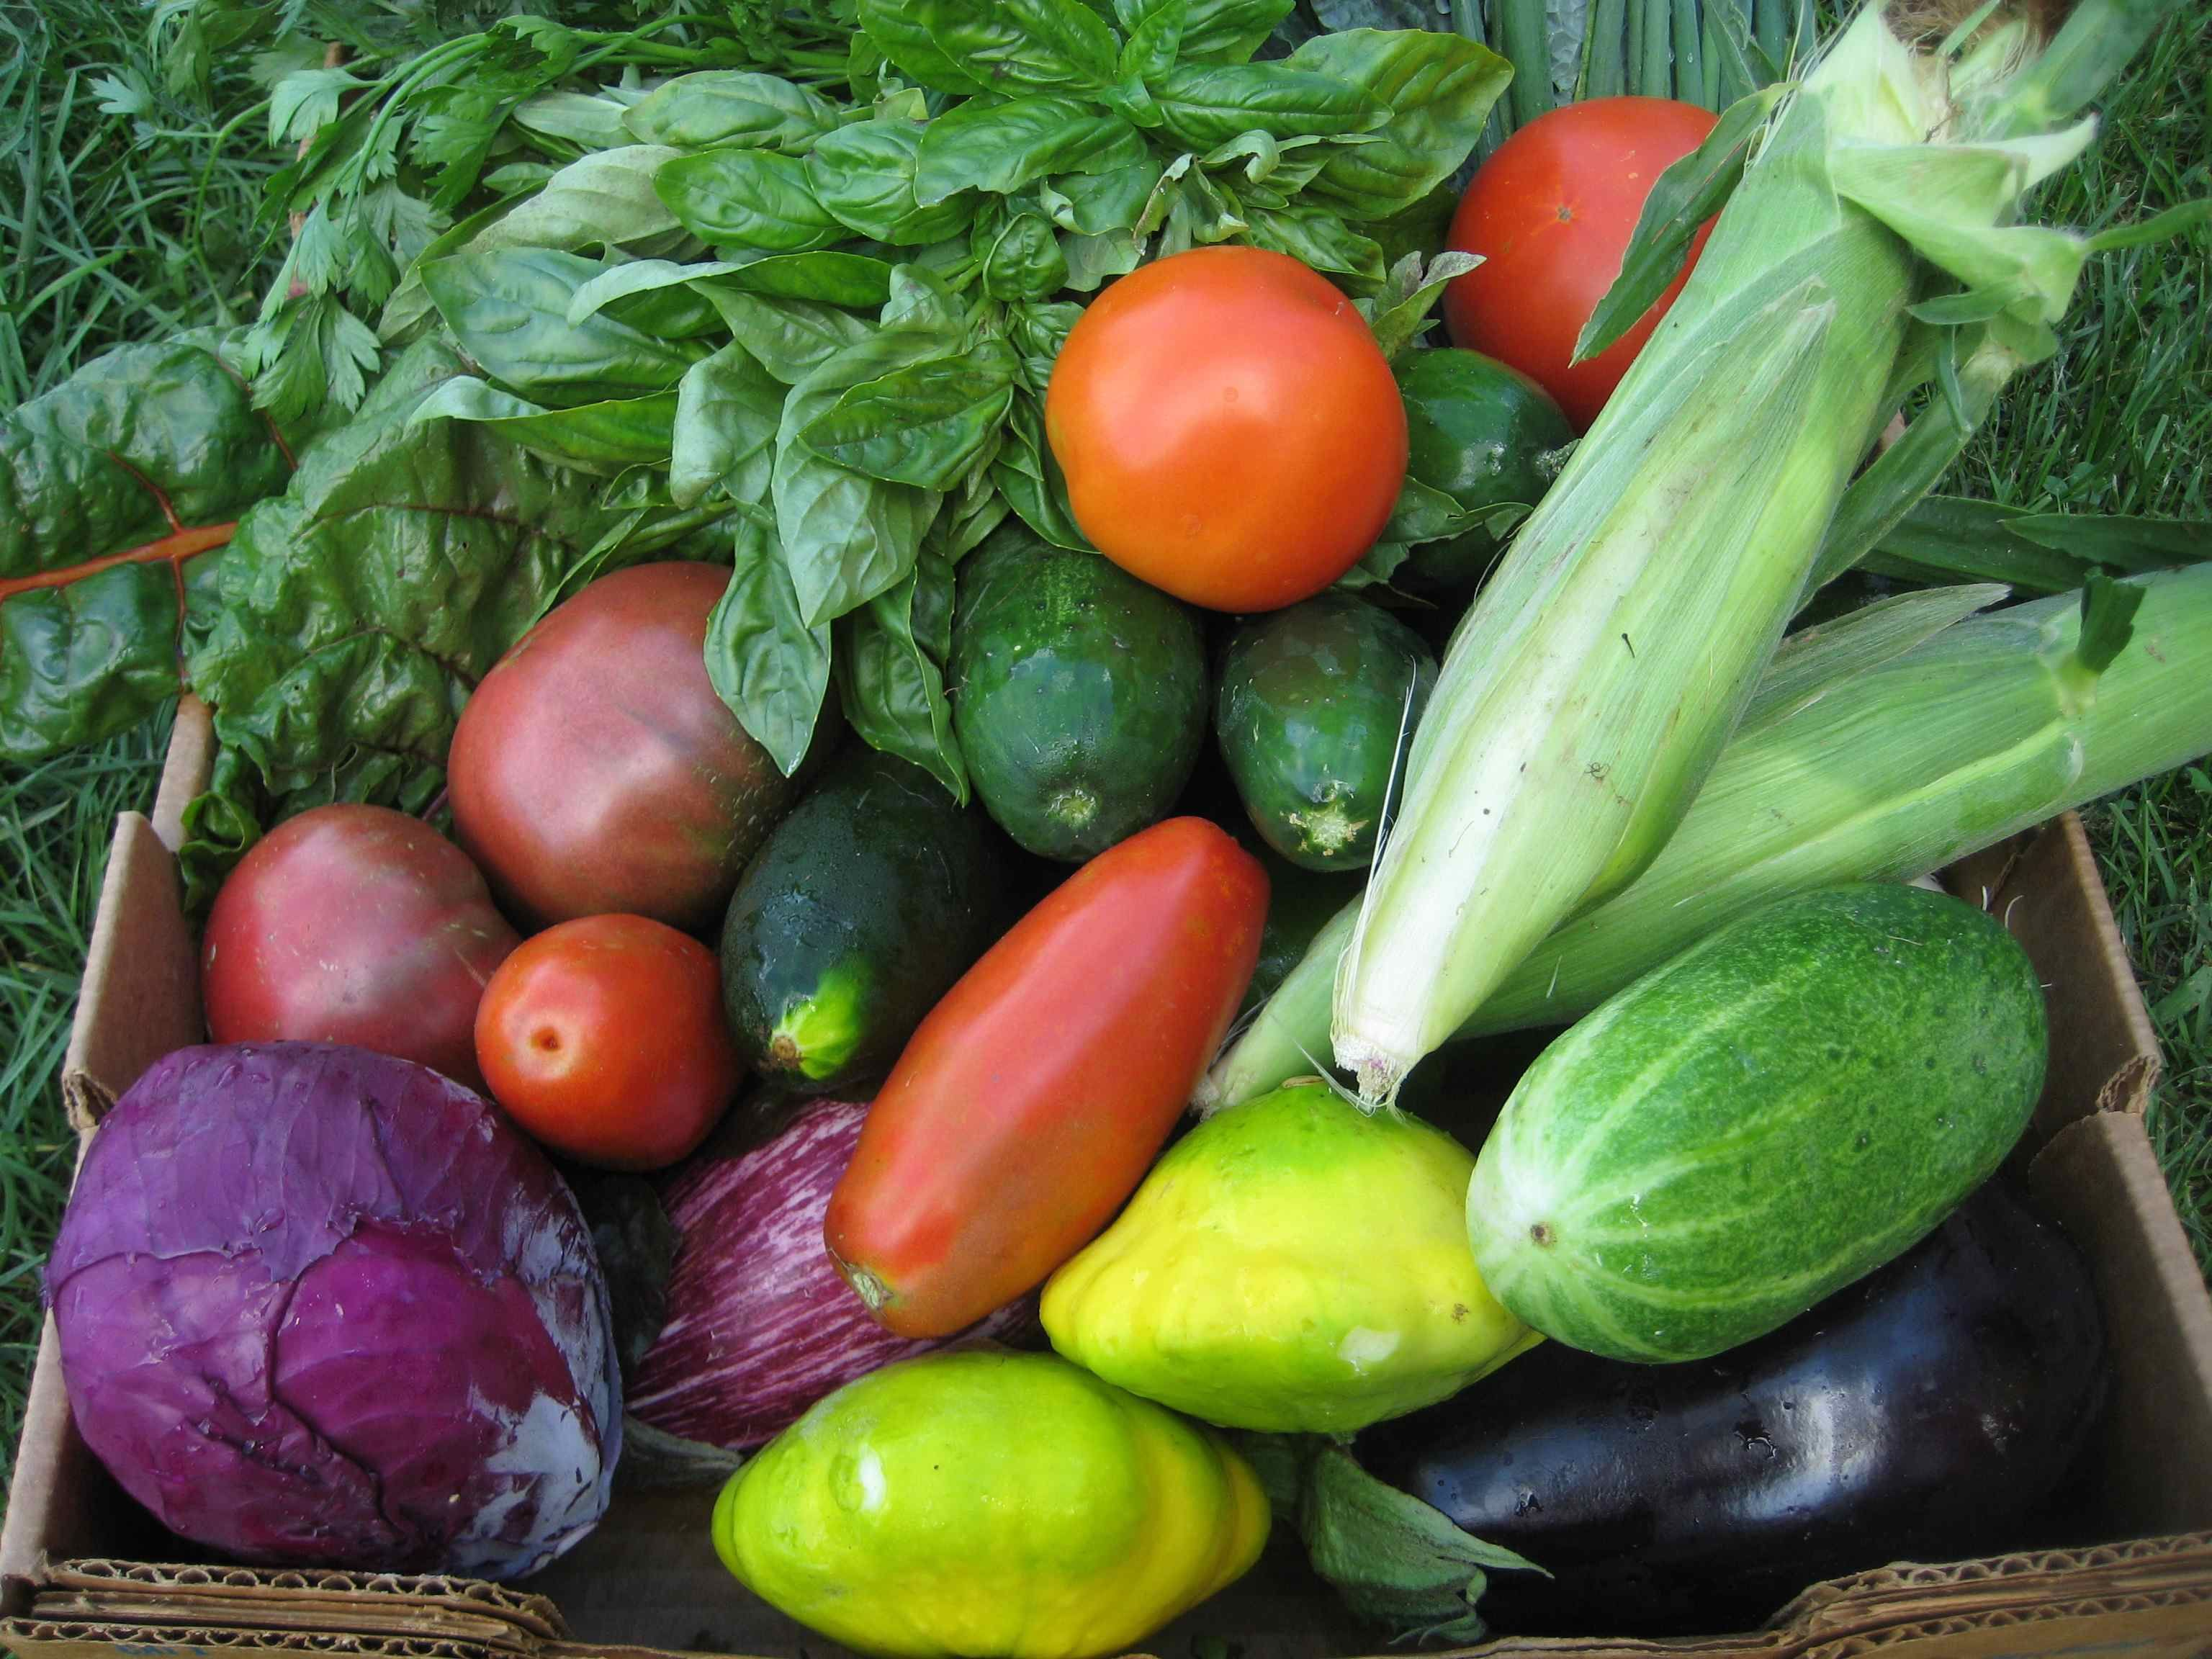 Become a member of Blandford Farm's CSA program! Enjoy fresh produce from the farm all summer long that is great tasting and healthy for you. #CSA #Community Supported Agriculture